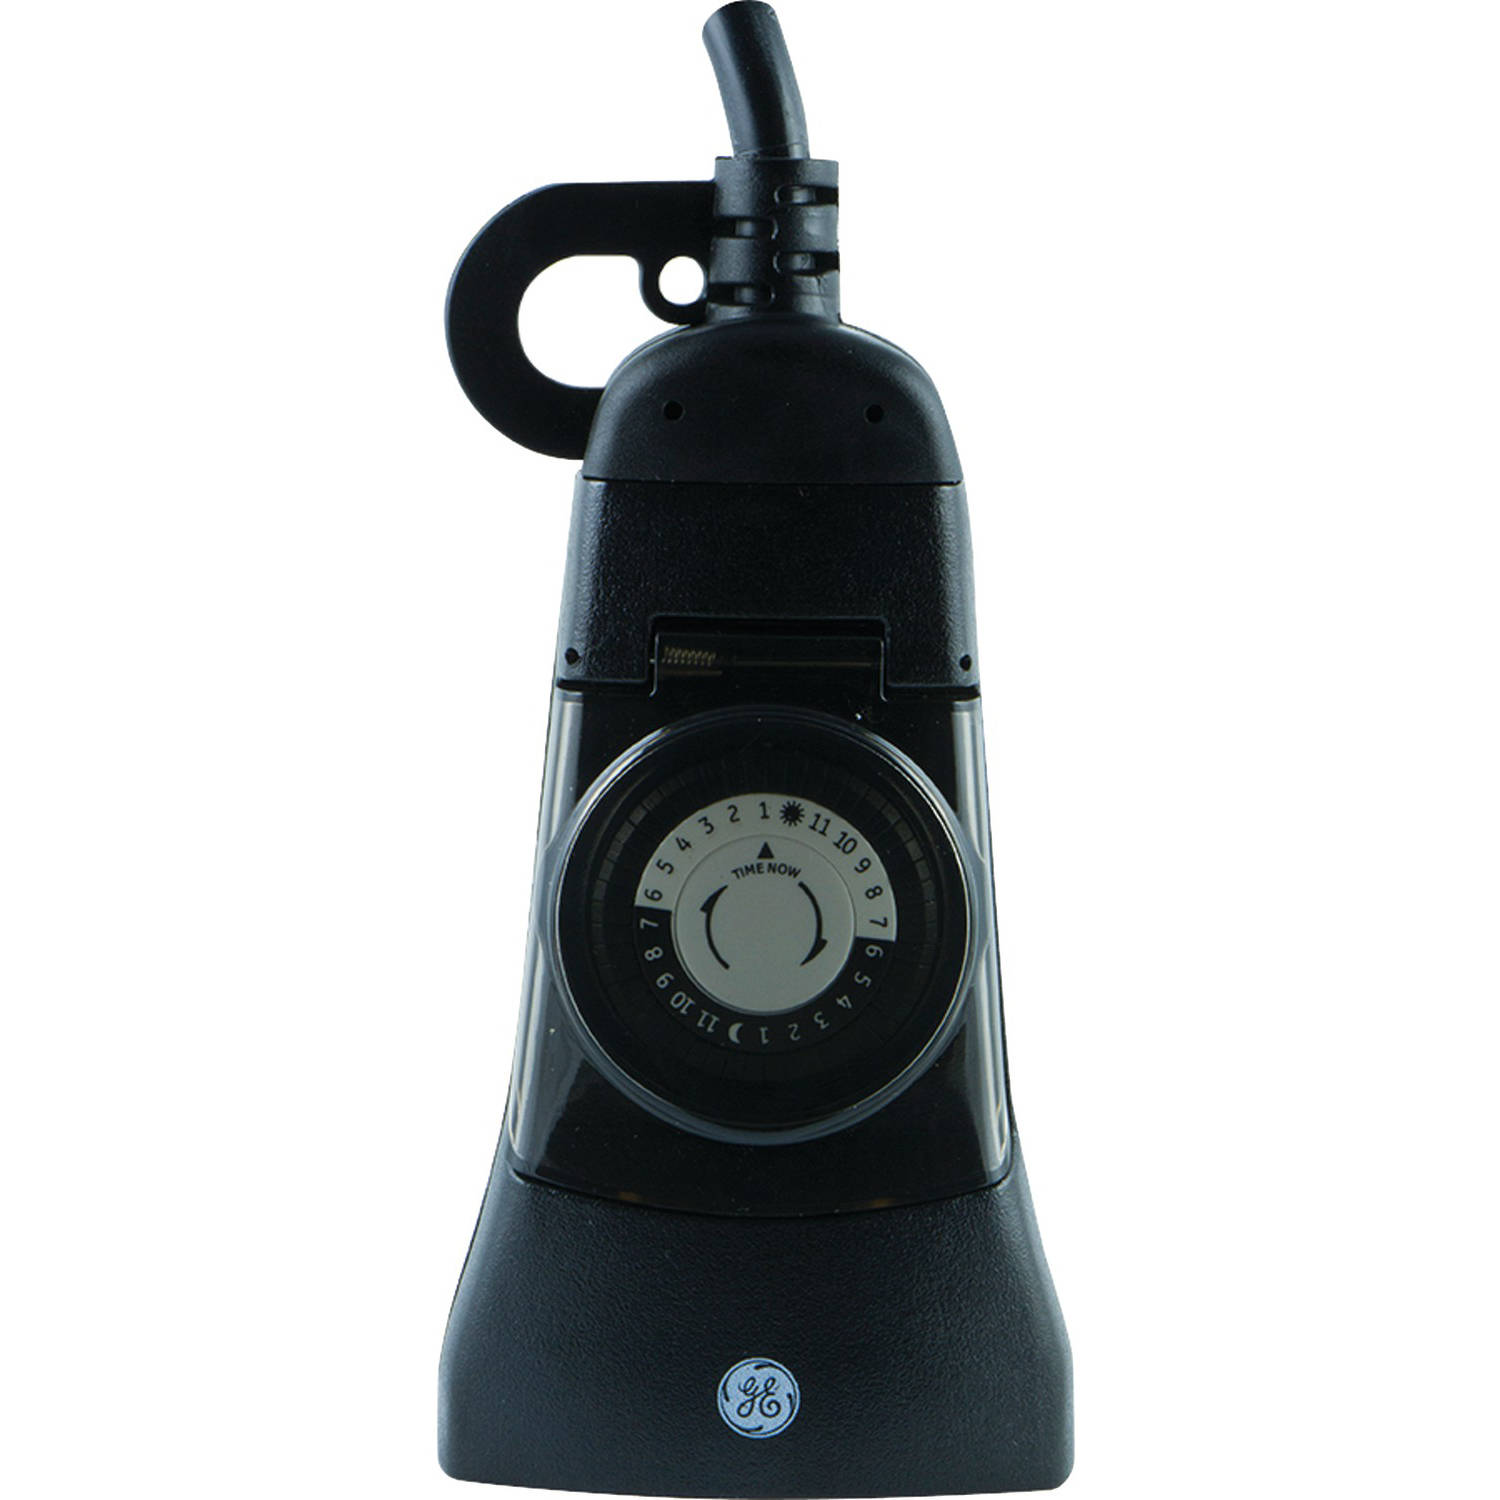 General Electric 15138 24-Hour Mechanical Outdoor 2-Outlet Plug-in Timer by General Electric